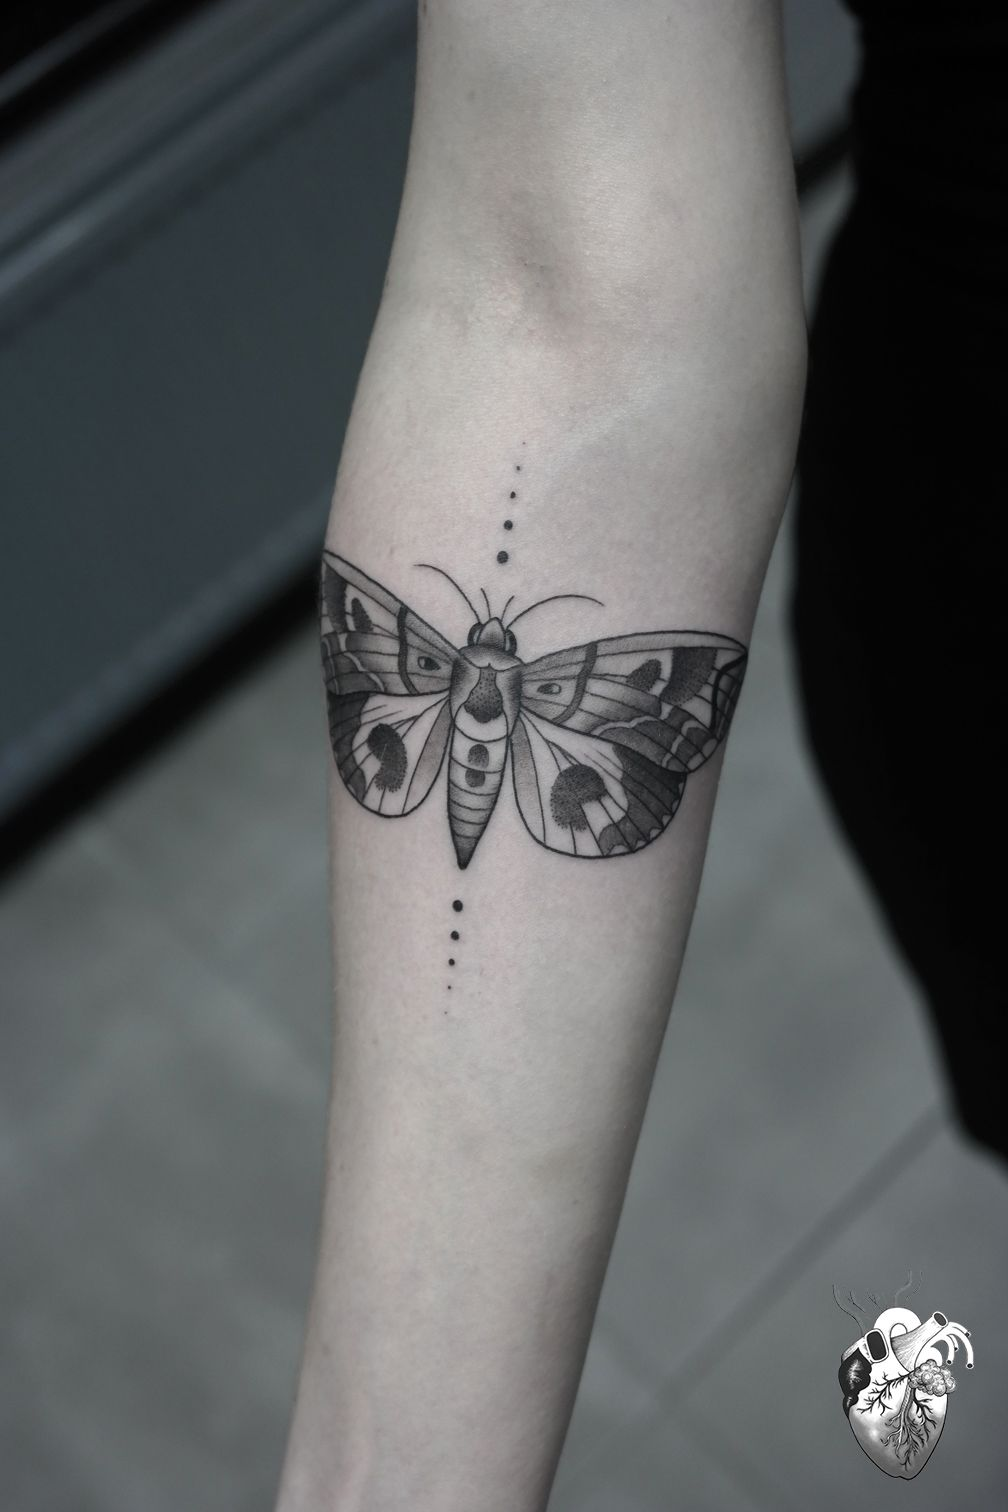 Geometric Moth Tattoo Google Search Moth Tattoo Tattoos Insect Tattoo